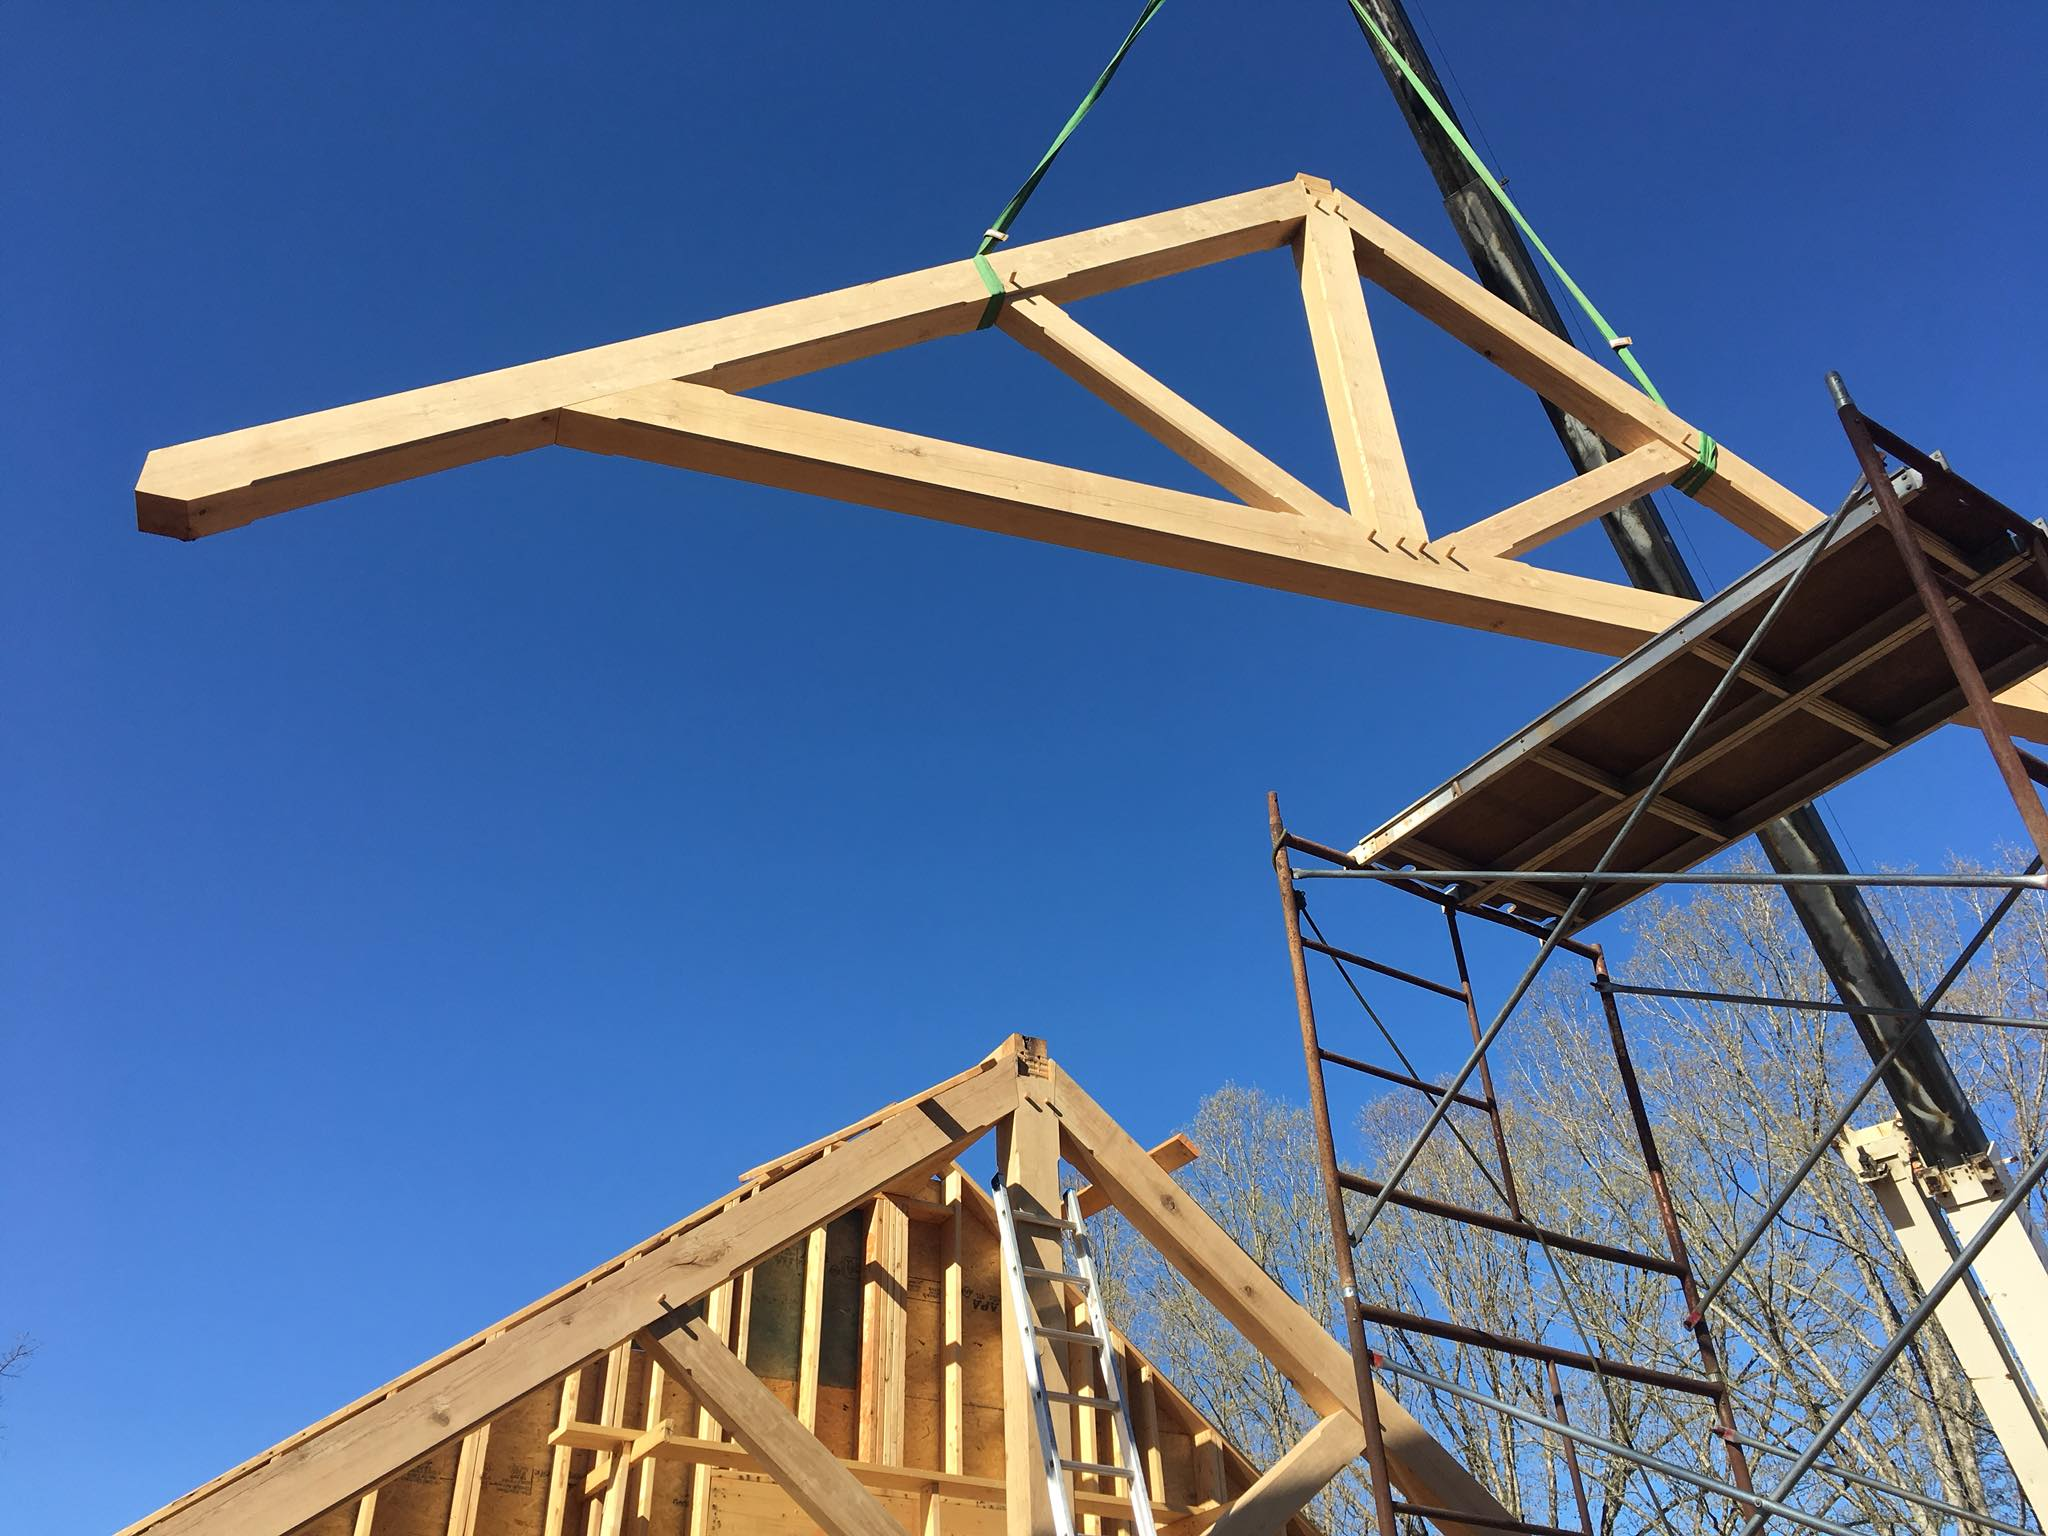 Timber Frame Builder in West Virginia, Virginia, Ohio and North Carolina. Timber Frame Charlottesville, Virginia. Timber Frame Warrenton, Virginia. Timber Frame Loudoun County, Virginia. Timber Frame Fauquier County, Virginia. Timber Frame Fairfax County, Virginia. Timber Frame Greenbrier County, West Virginia. Timber Frame Lewisburg, West Virginia. Timber Frame Charleston, West Virginia.